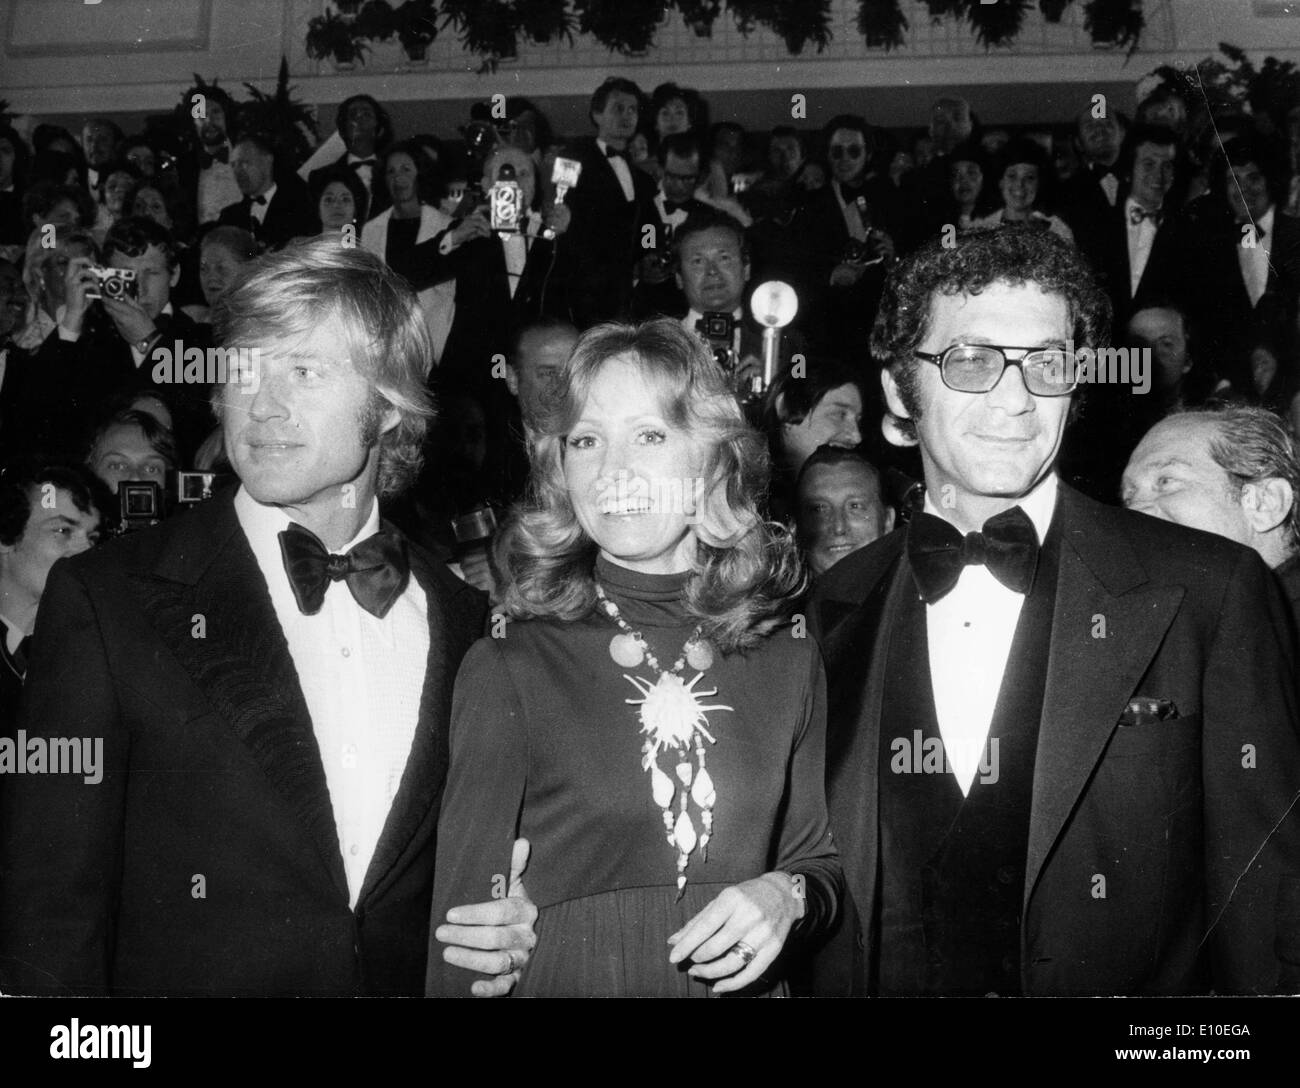 Actor Robert Redford, his wife Lola and Sydney Pollack - Stock Image